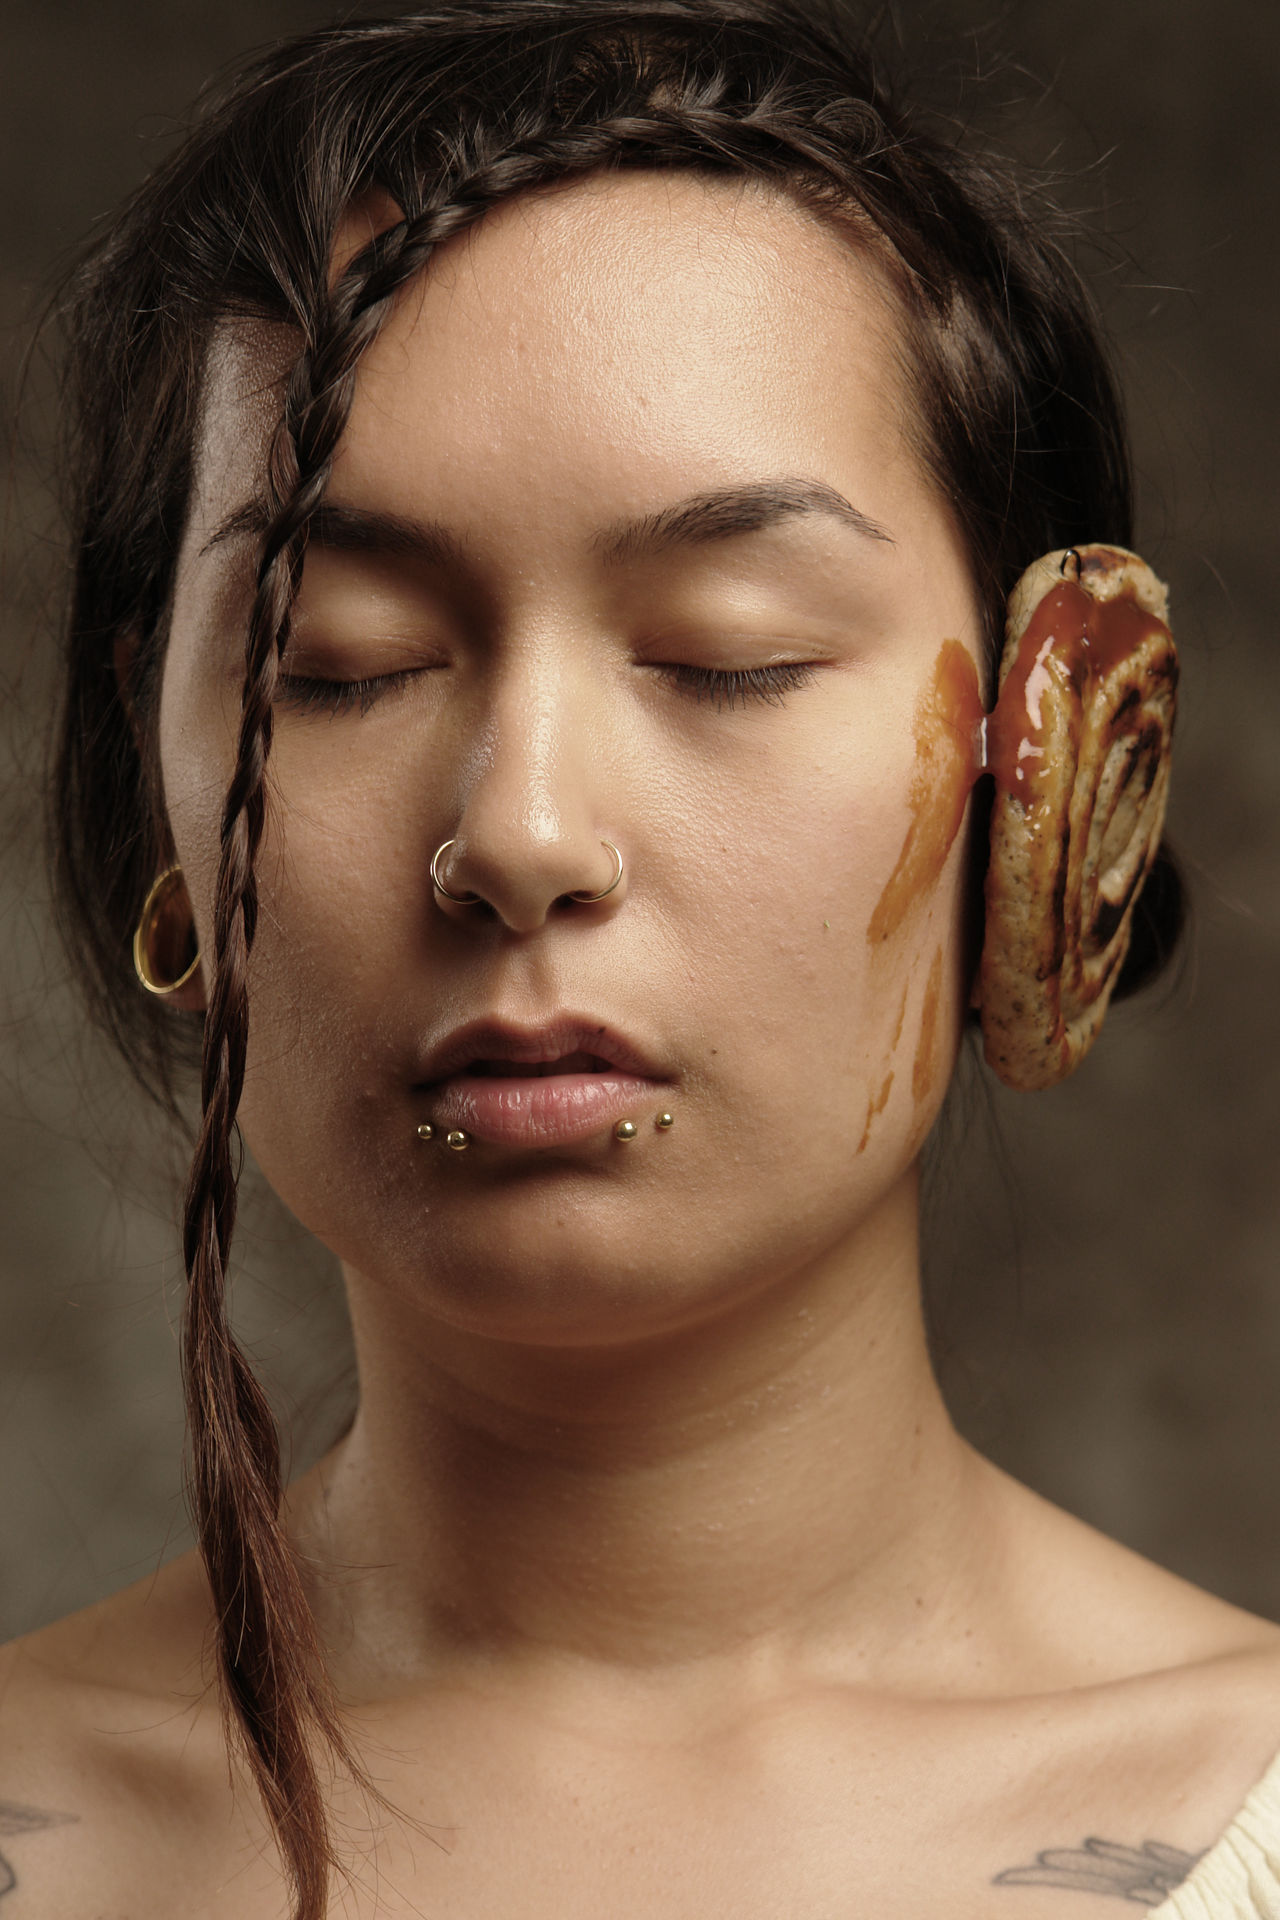 Currywurst Art Art Foto Art Photography Beautiful Woman Braid Closed Eyes Contemplation Currywurst Ethnic Foto Art Front View Headshot Human Face Indoors  Ketchup One Person People Photo Art Piercing Portrait Real People Smeared Stained Young Adult Young Women